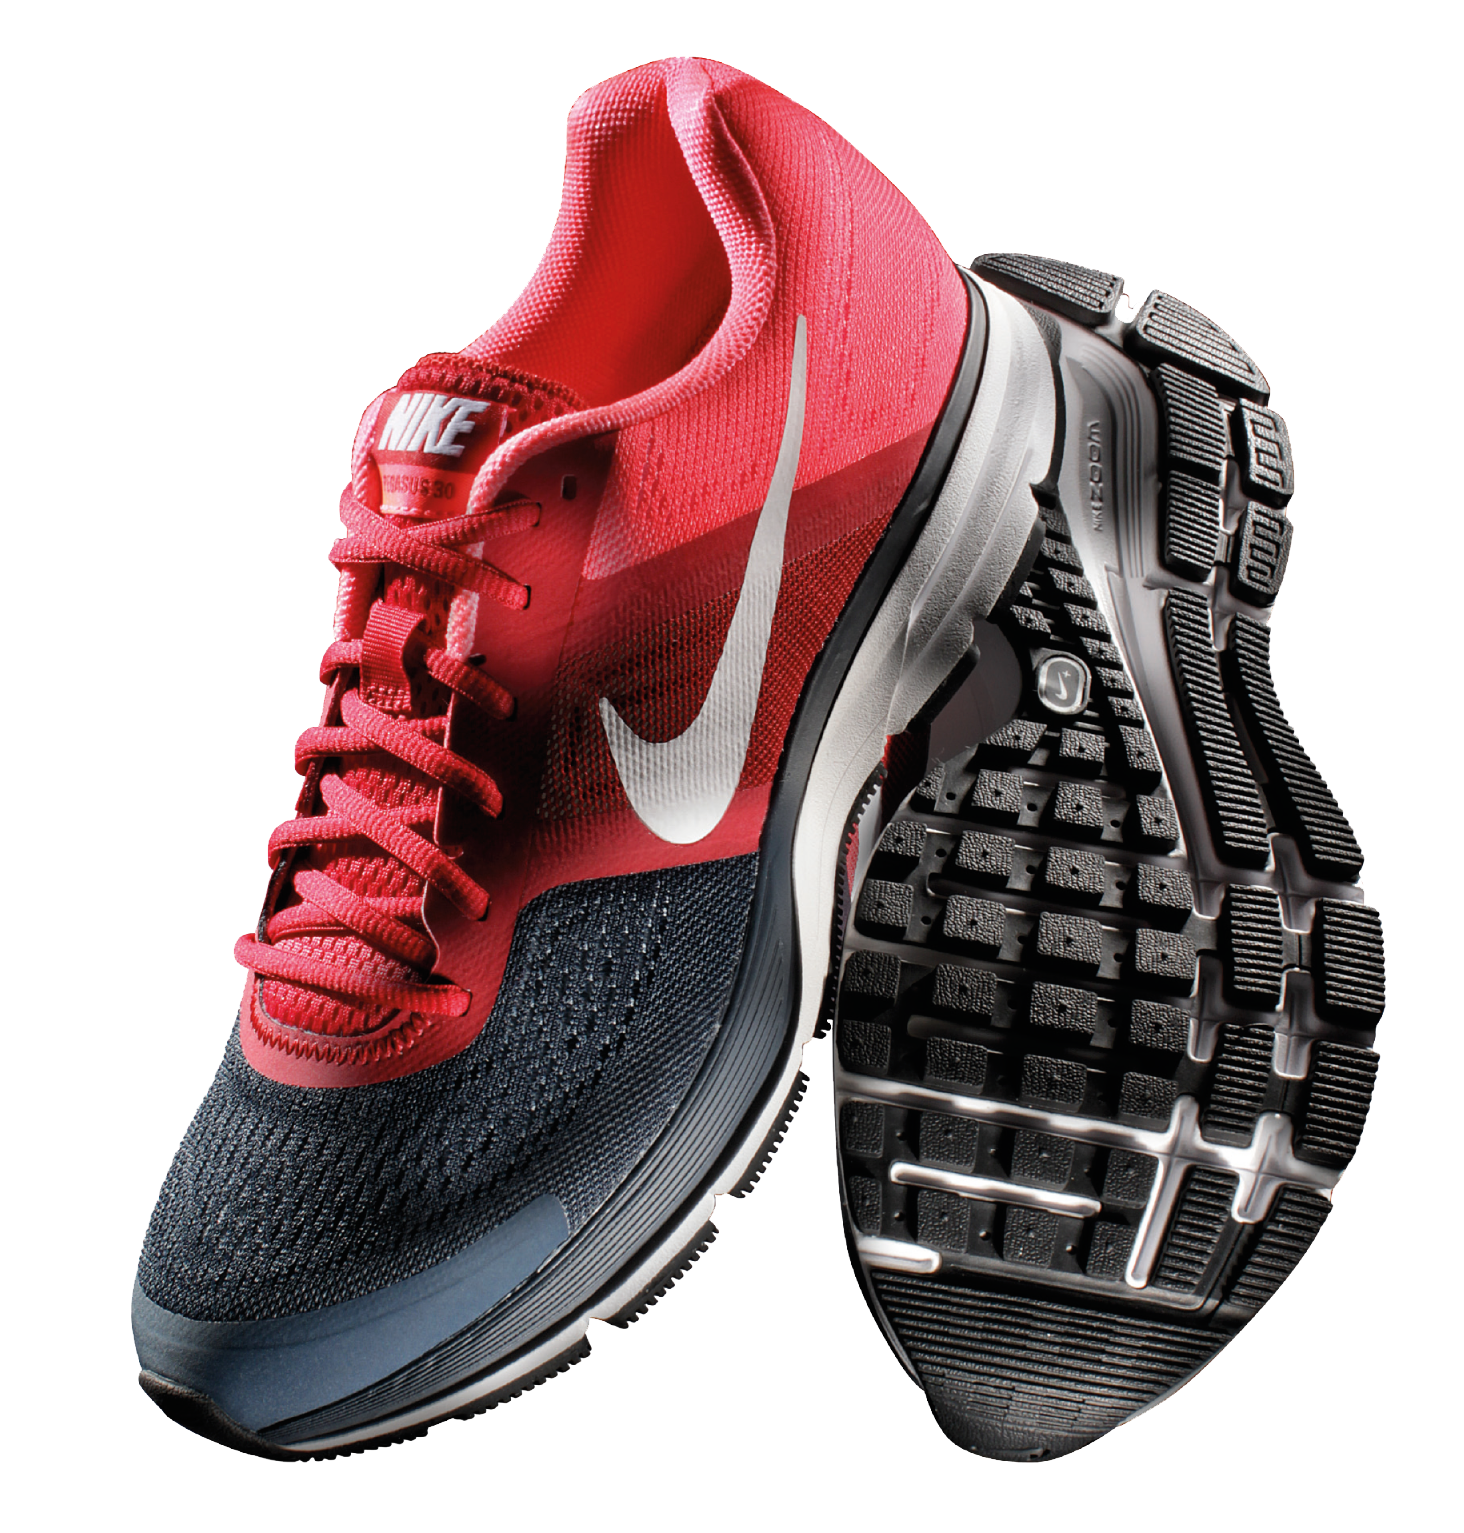 download nike shoes transparent png for designing projects #17793